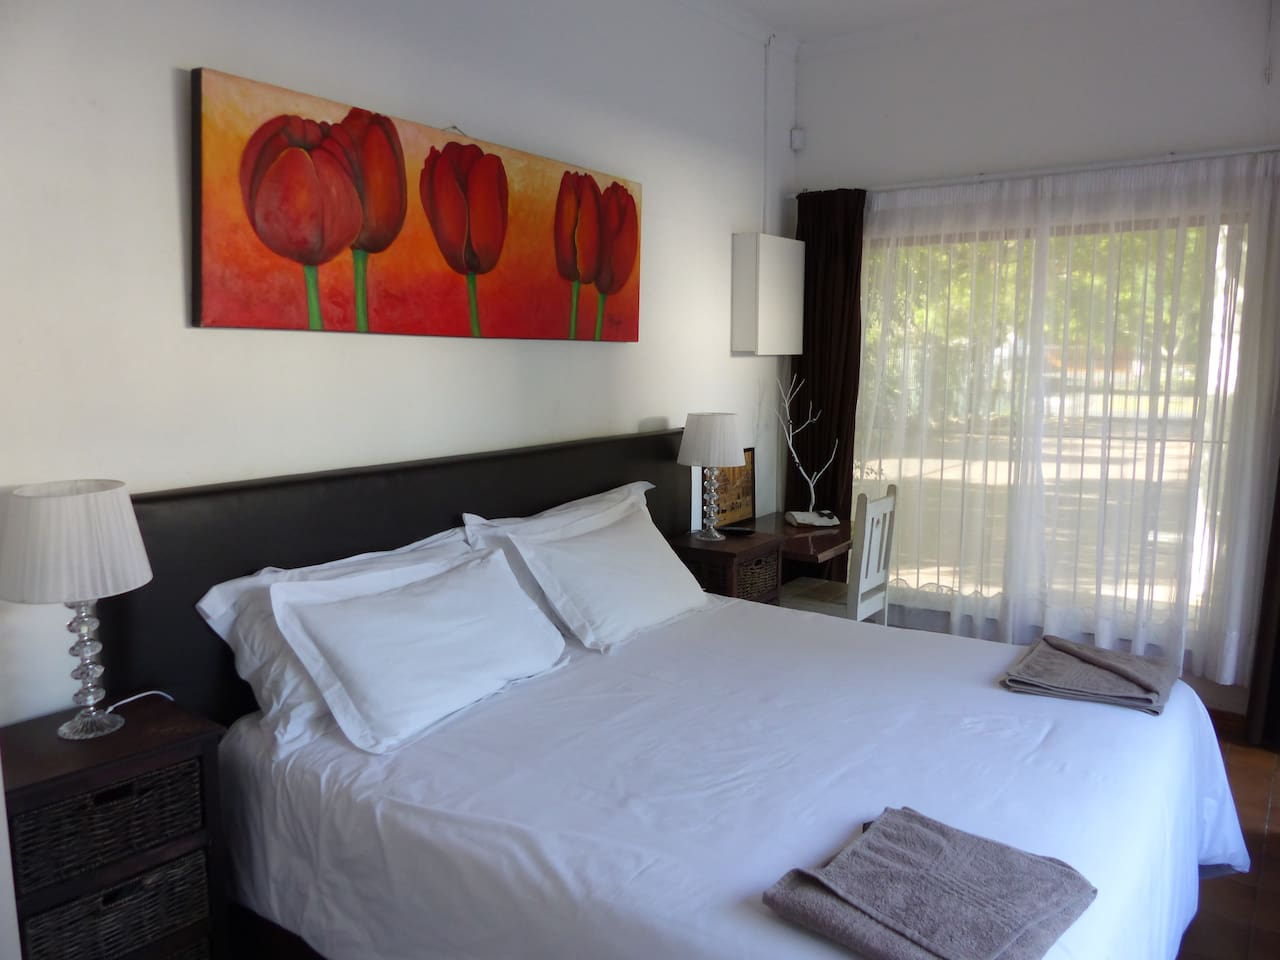 King Bed with hotel-quality linen, overlooking the parking area and the quiet street view